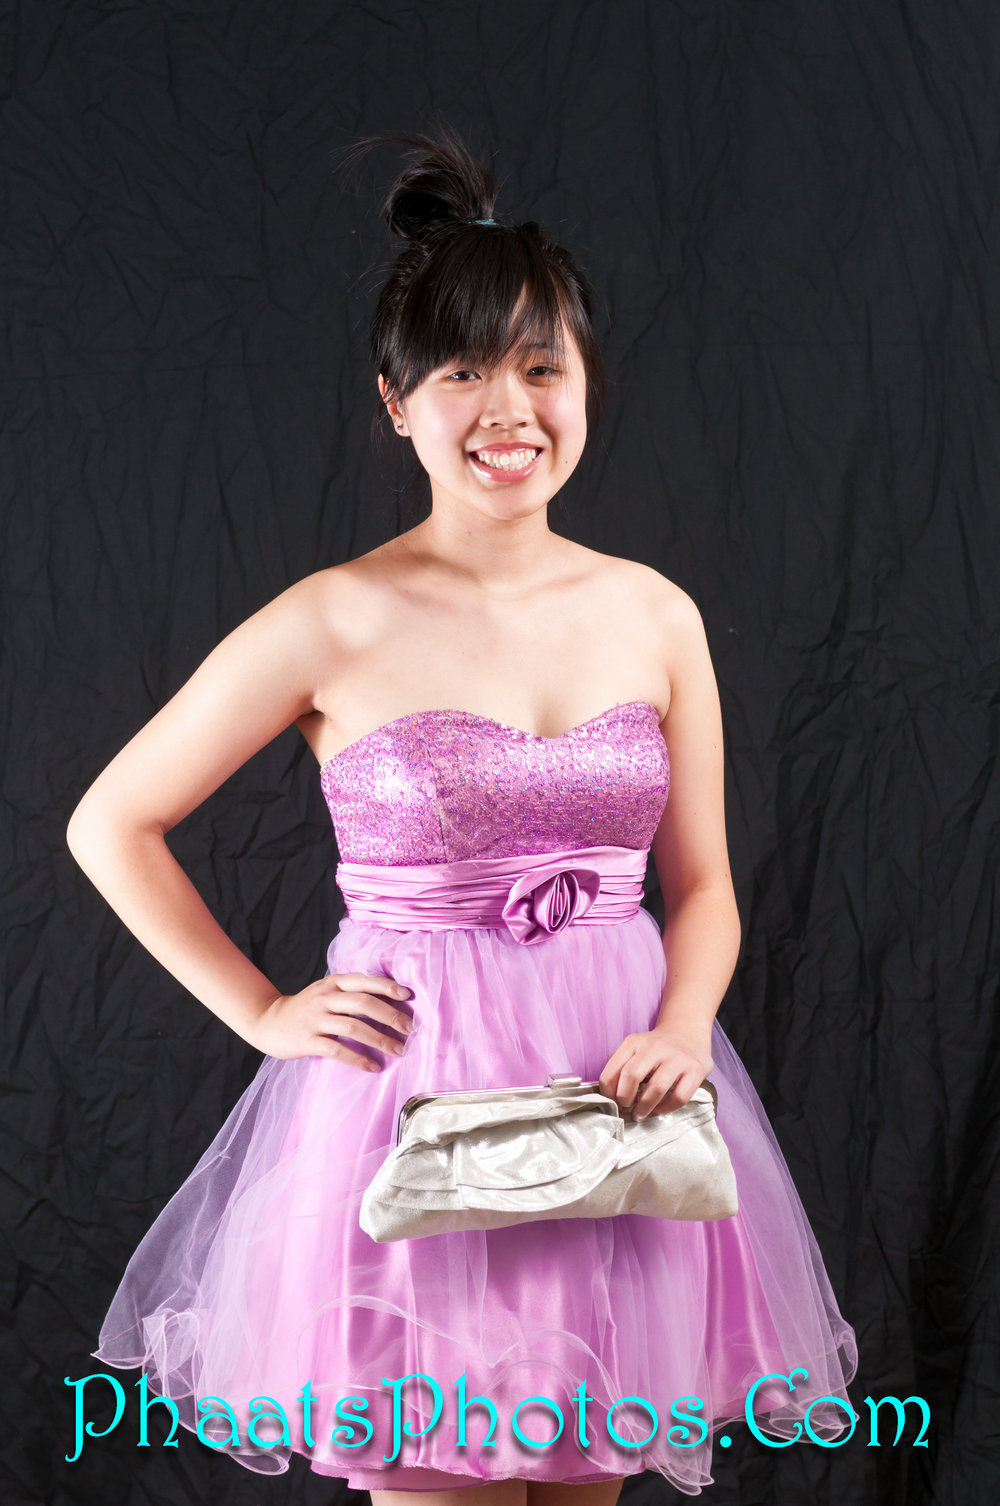 26.1 - Cindy Feng - Photo Release Apr2012.jpg